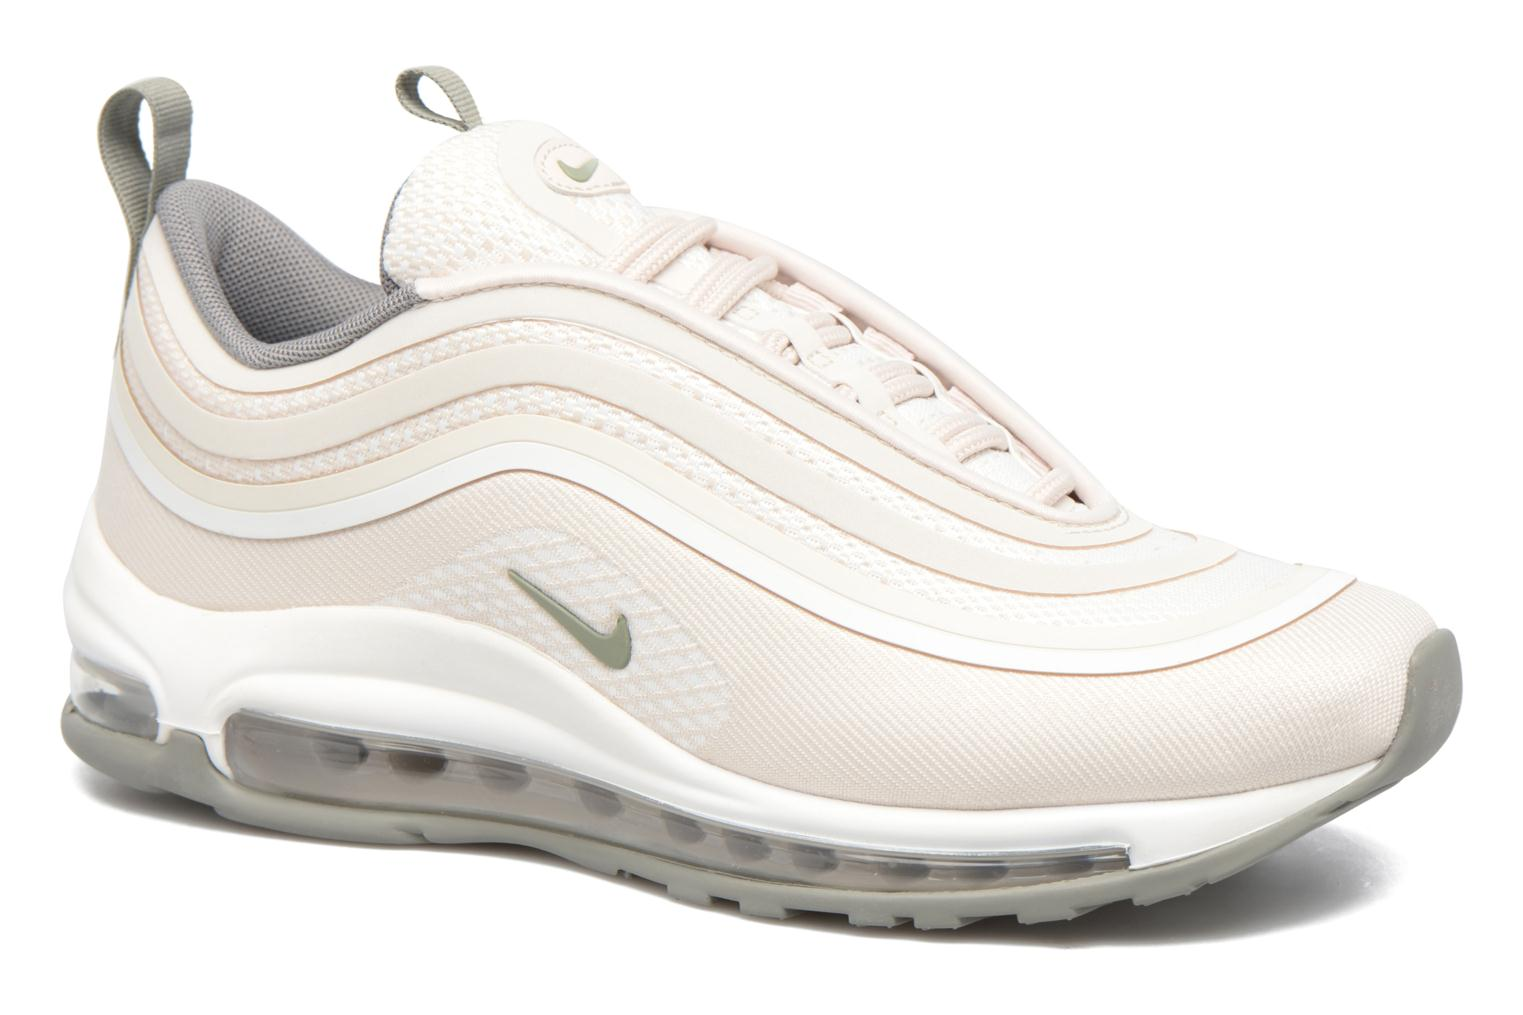 W Air Max 97 Ul '17 Lt Orewood Brn/Dark Stucco-Summit White